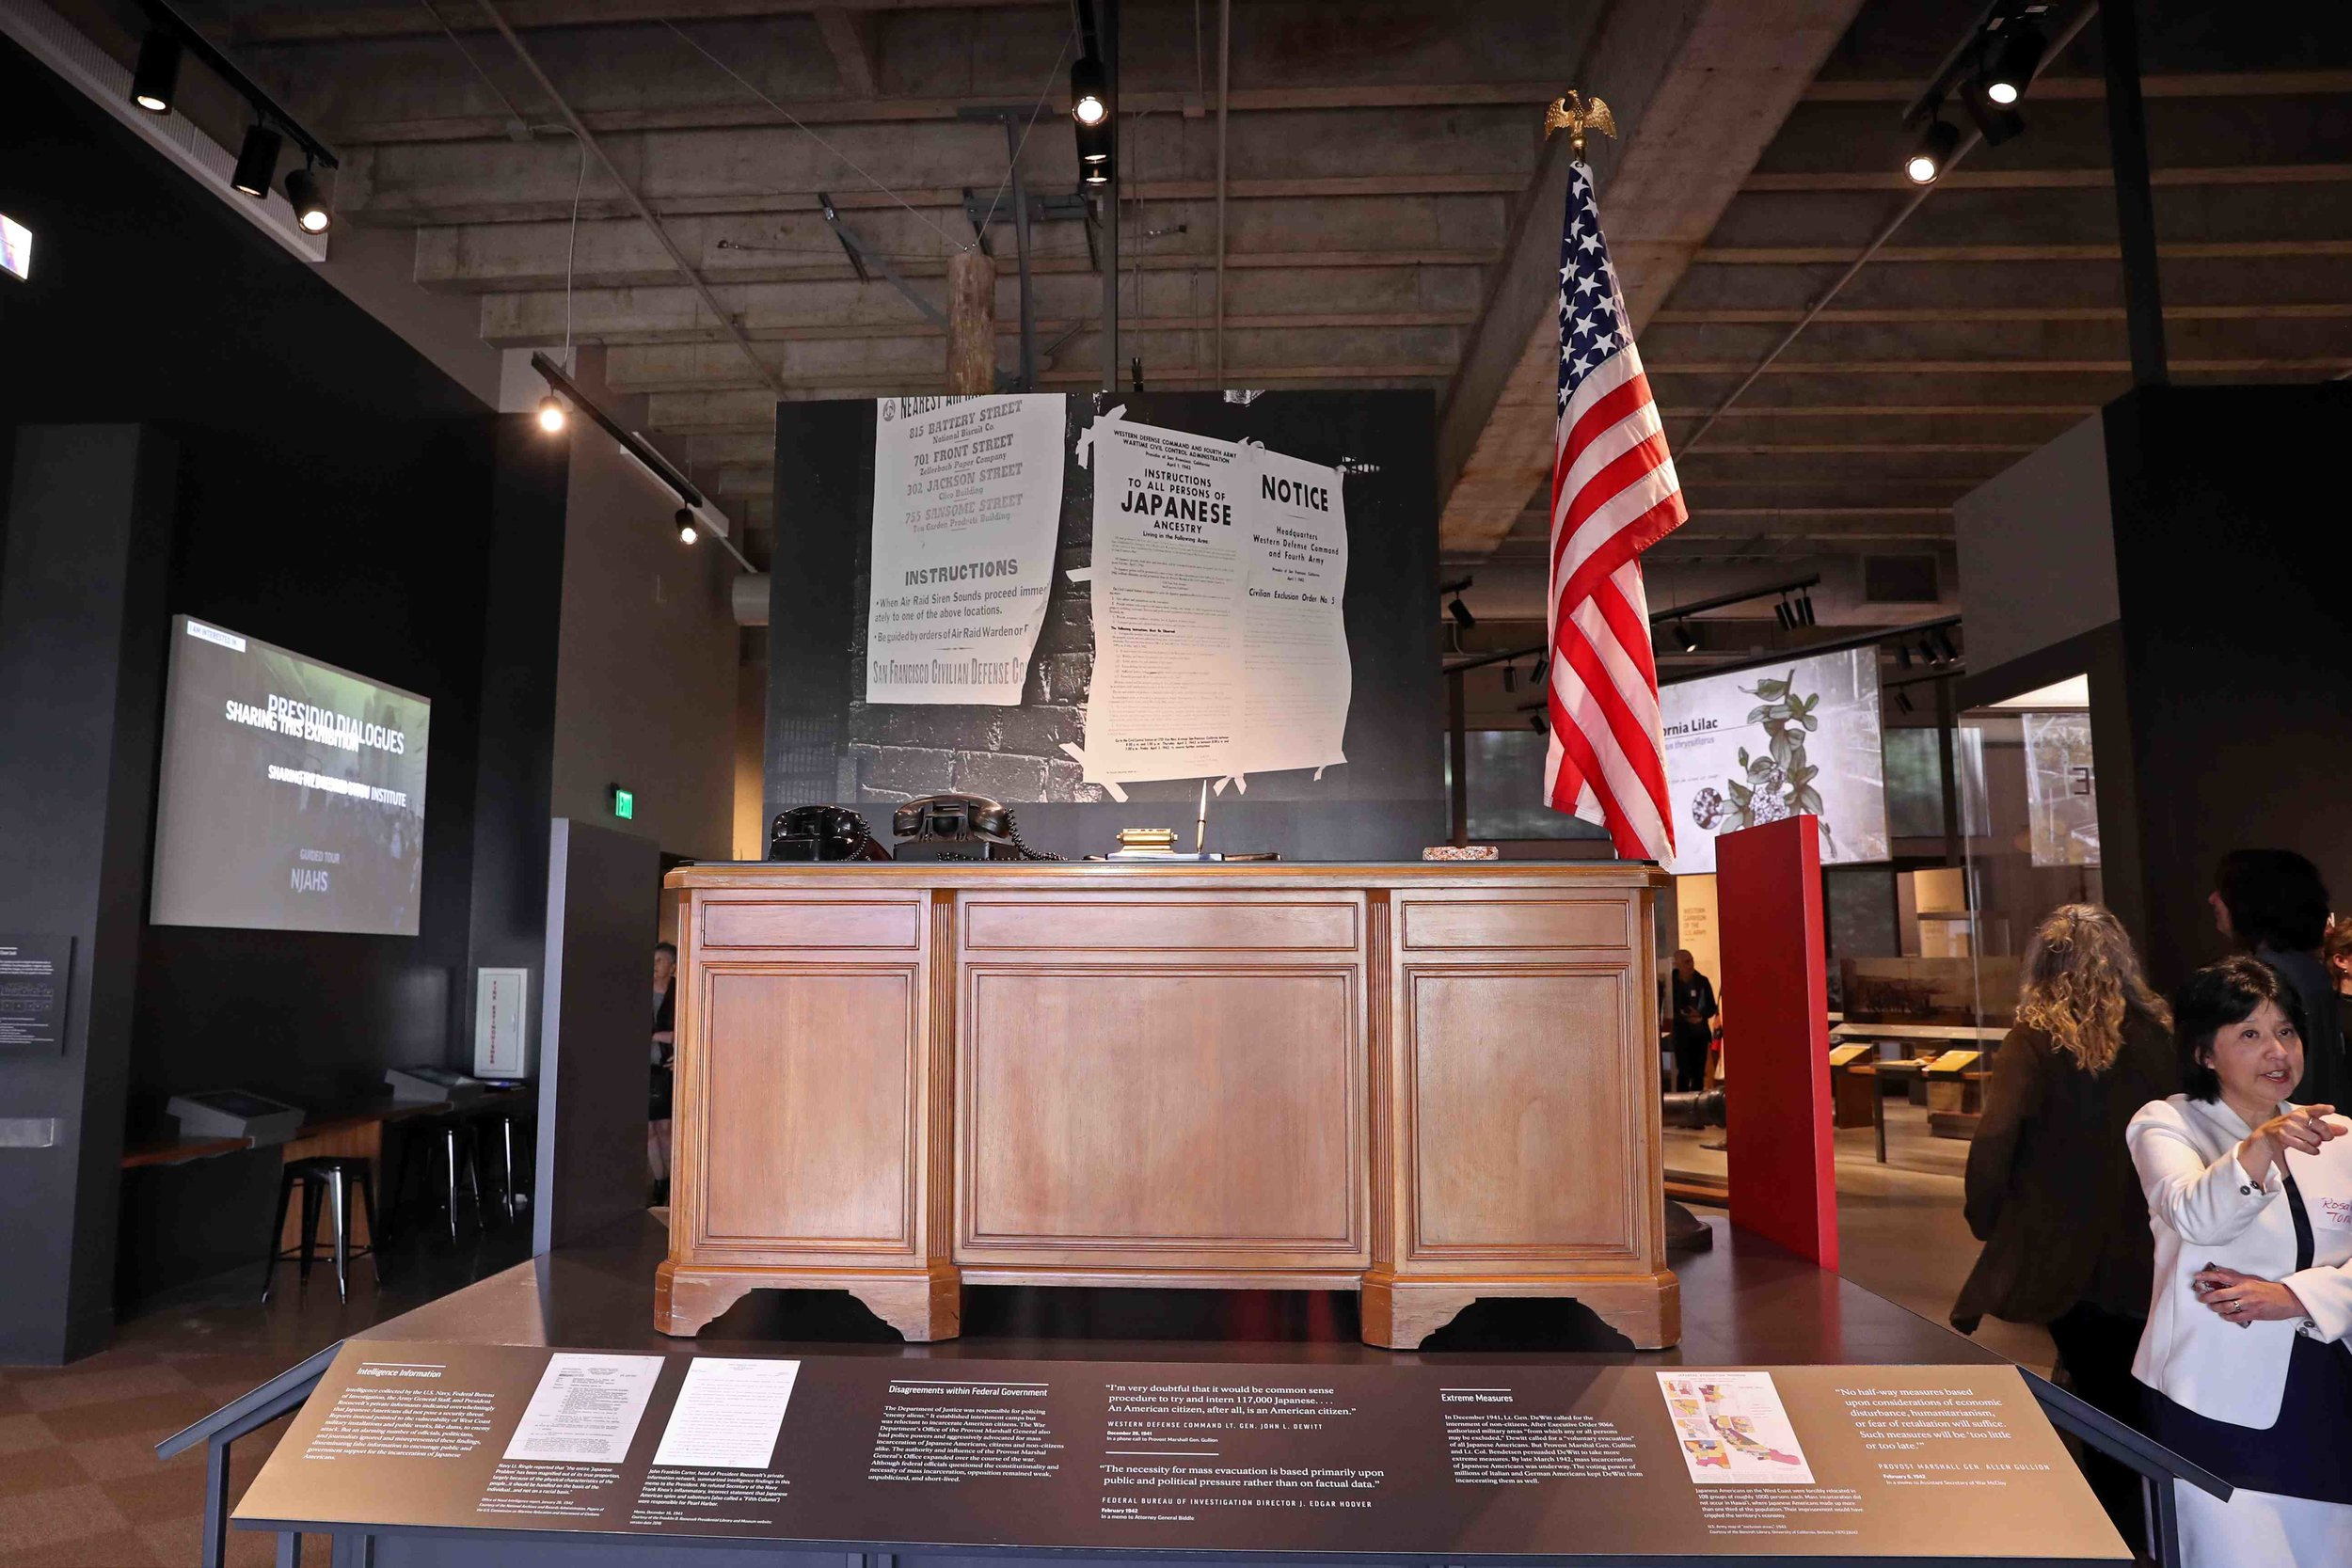 """A 1940s-era desk, a representation of the orders that were signed at the Presidio by Lt. Gen. John DeWitt to send Japanese Americans to the camps, sits in the center of the """"Exclusion"""" exhibit.  Photo by Darren Yamashita"""